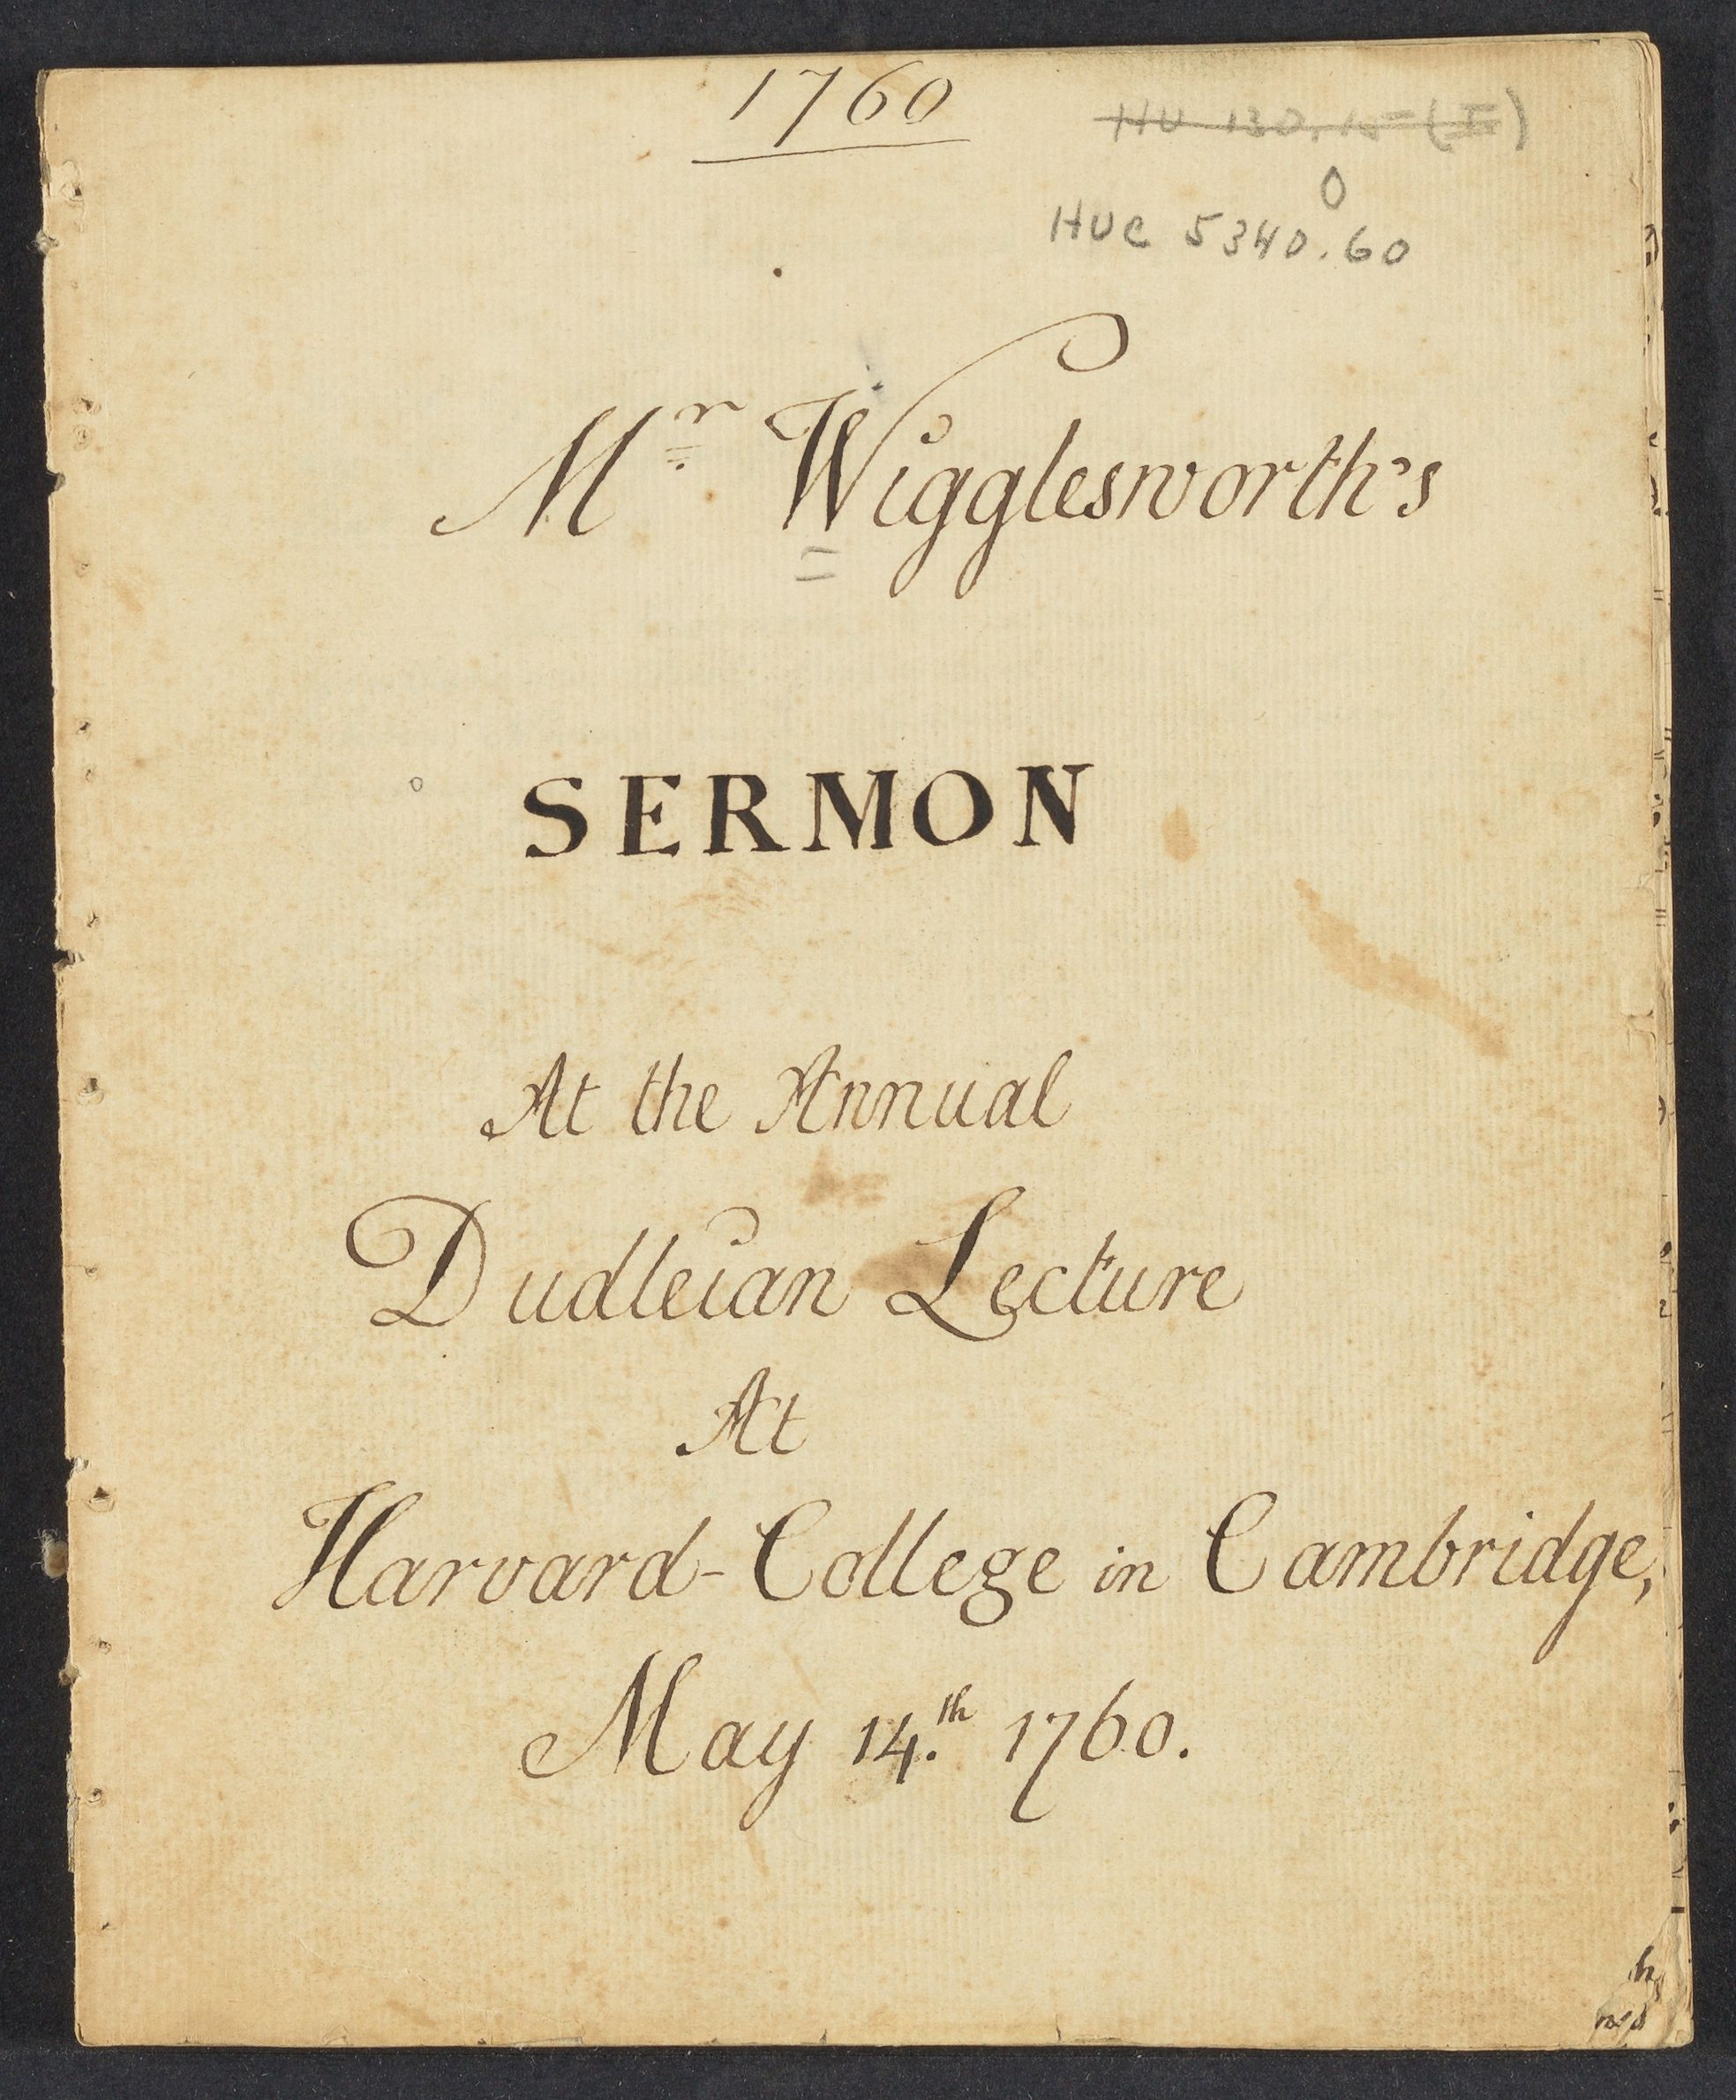 Sermon at the annual Dudleian lecture at Harvard College in Cambridge, May 14th, 1760